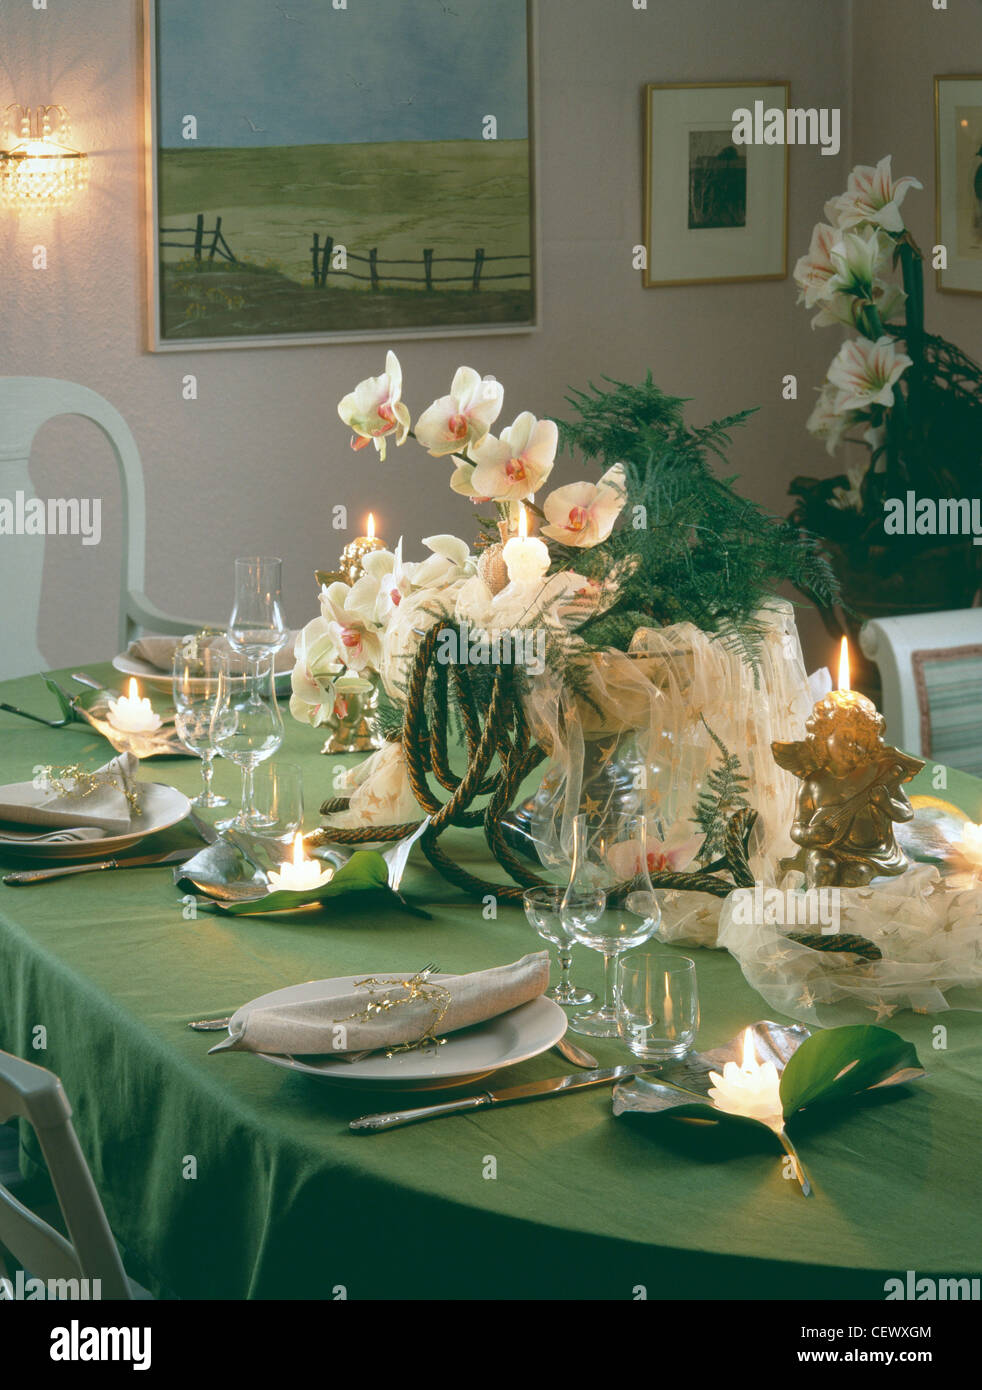 Christmas Table Setting With Green Table Cloth Flower